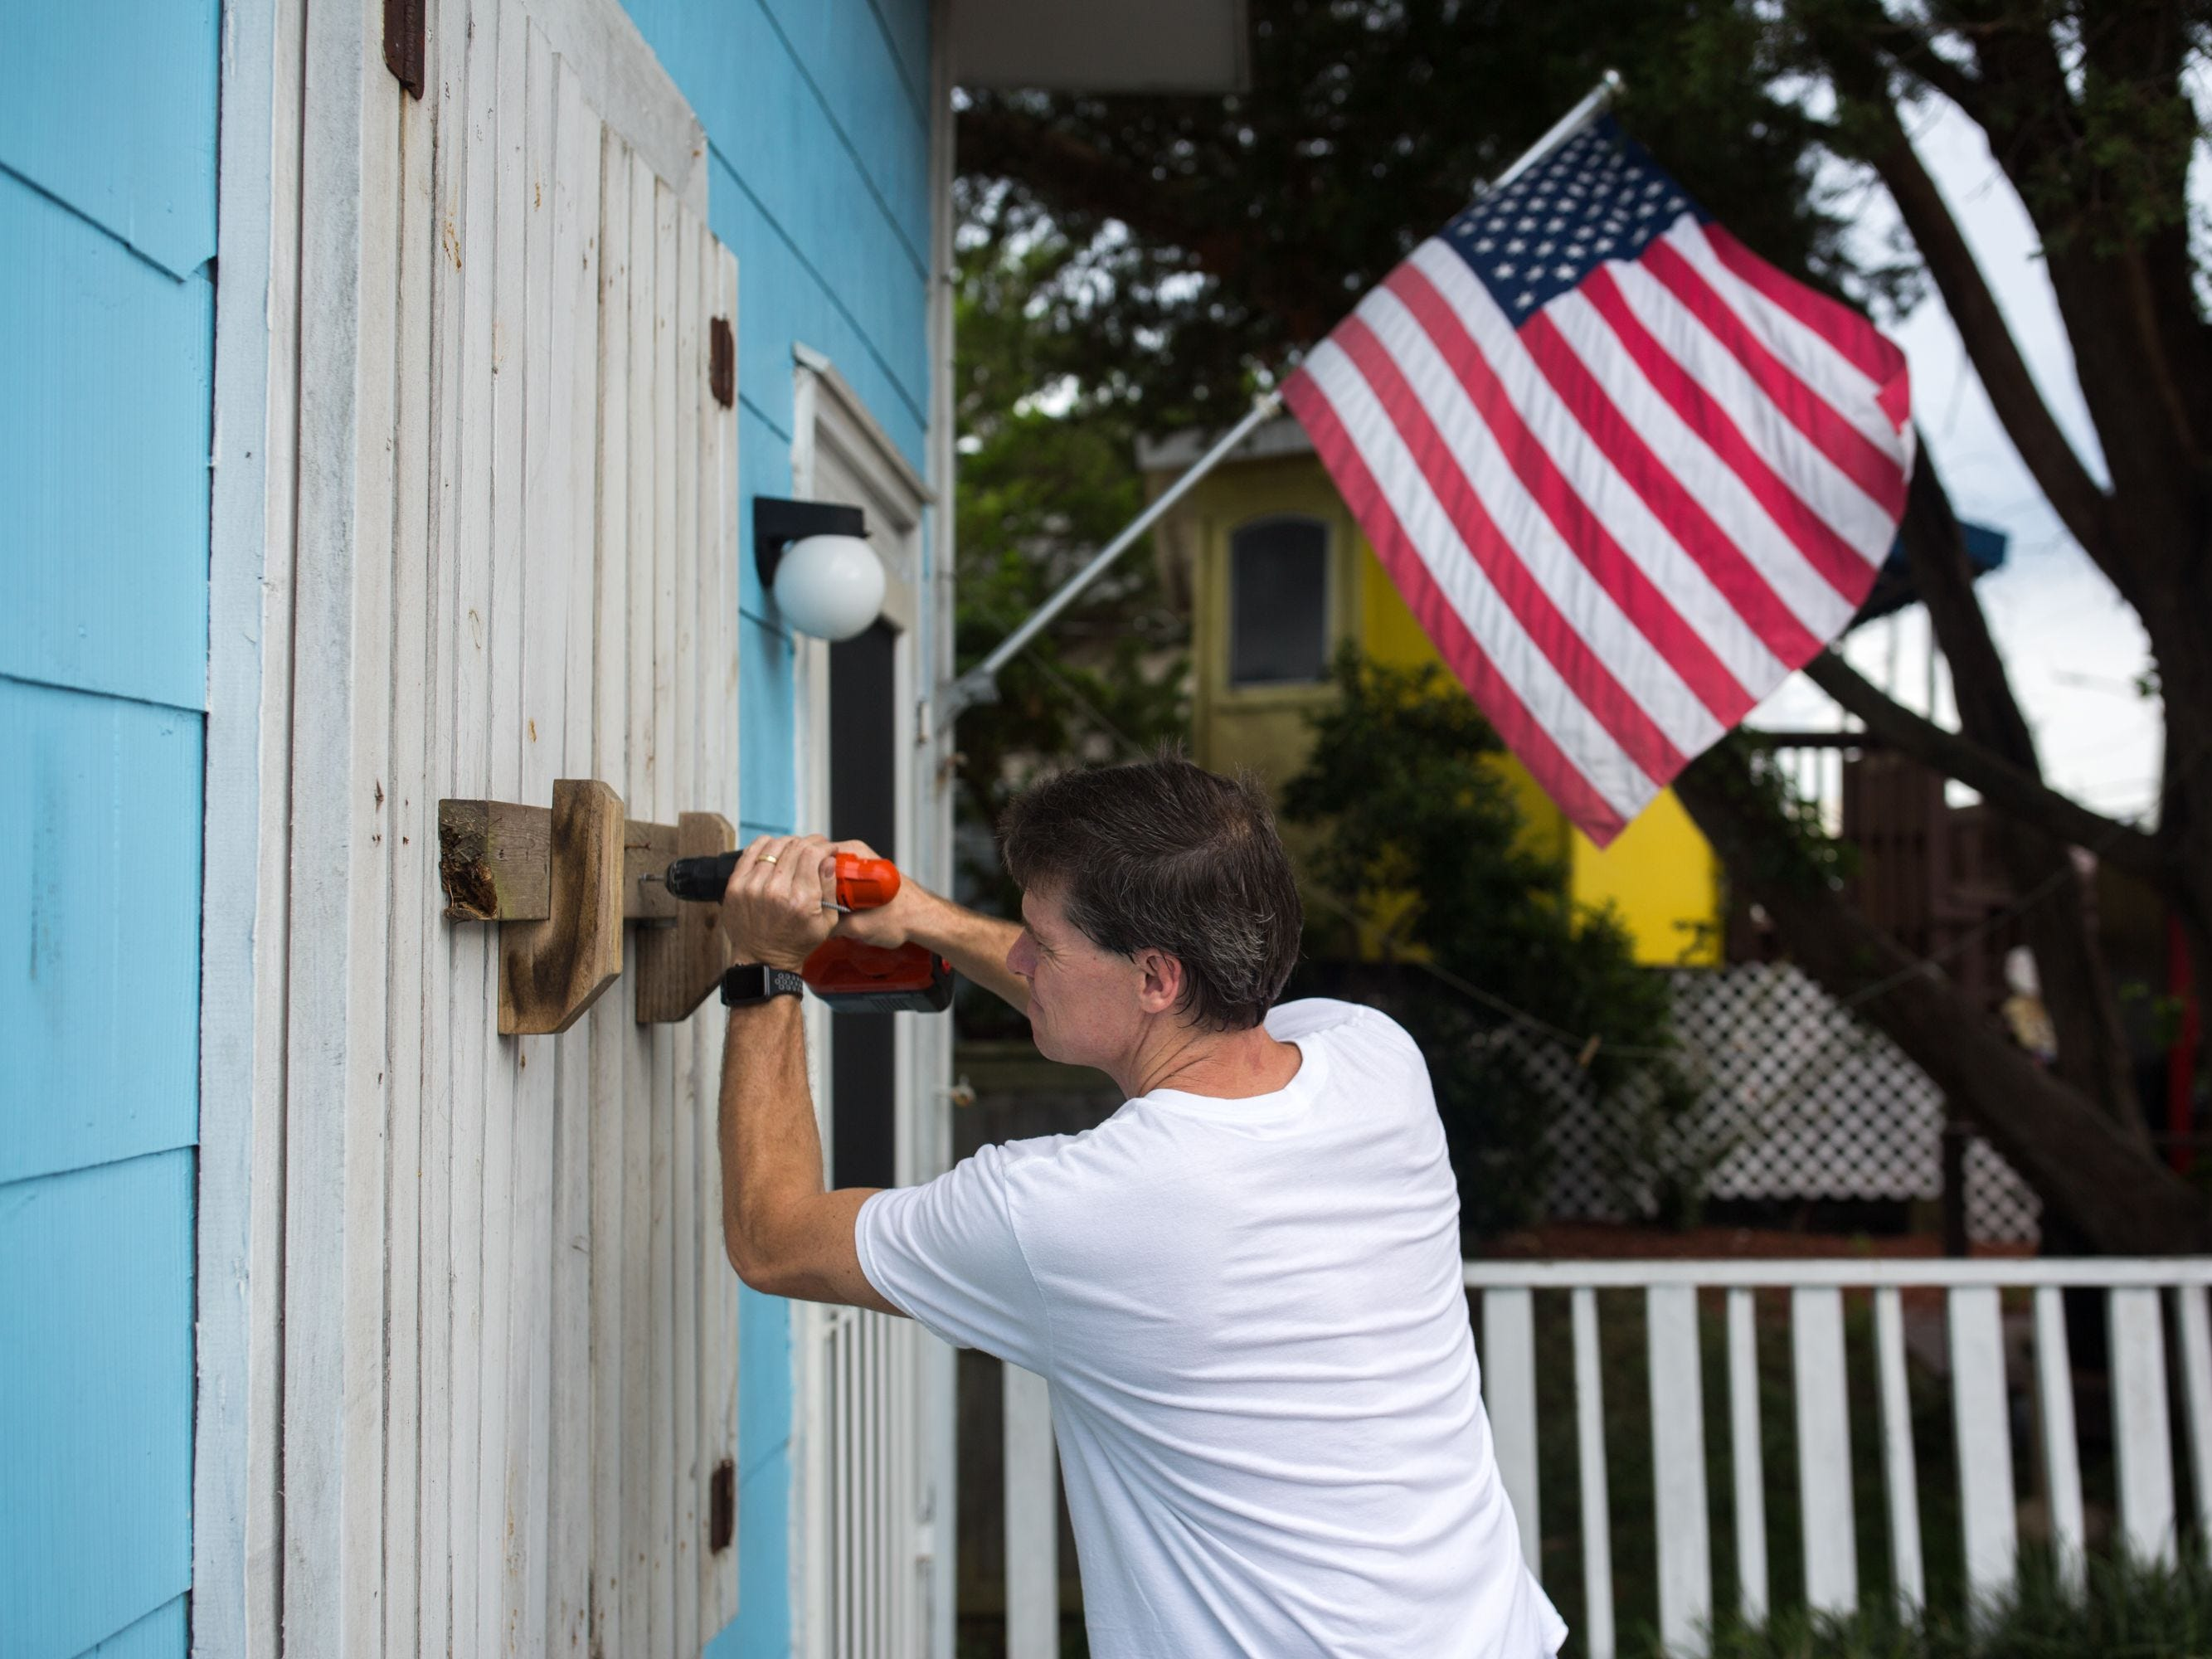 A man helps board up Aussie Island surf shop in anticipation of Hurricane Florence's high storm surge. - More than a million people were under evacuation orders in the eastern United States Tuesday, where powerful Hurricane Florence threatened catastrophic damage to a region popular with vacationers and home to crucial government institutions. (Photo by Logan CYRUS / AFP)LOGAN CYRUS/AFP/Getty Images ORIG FILE ID: AFP_1908LS